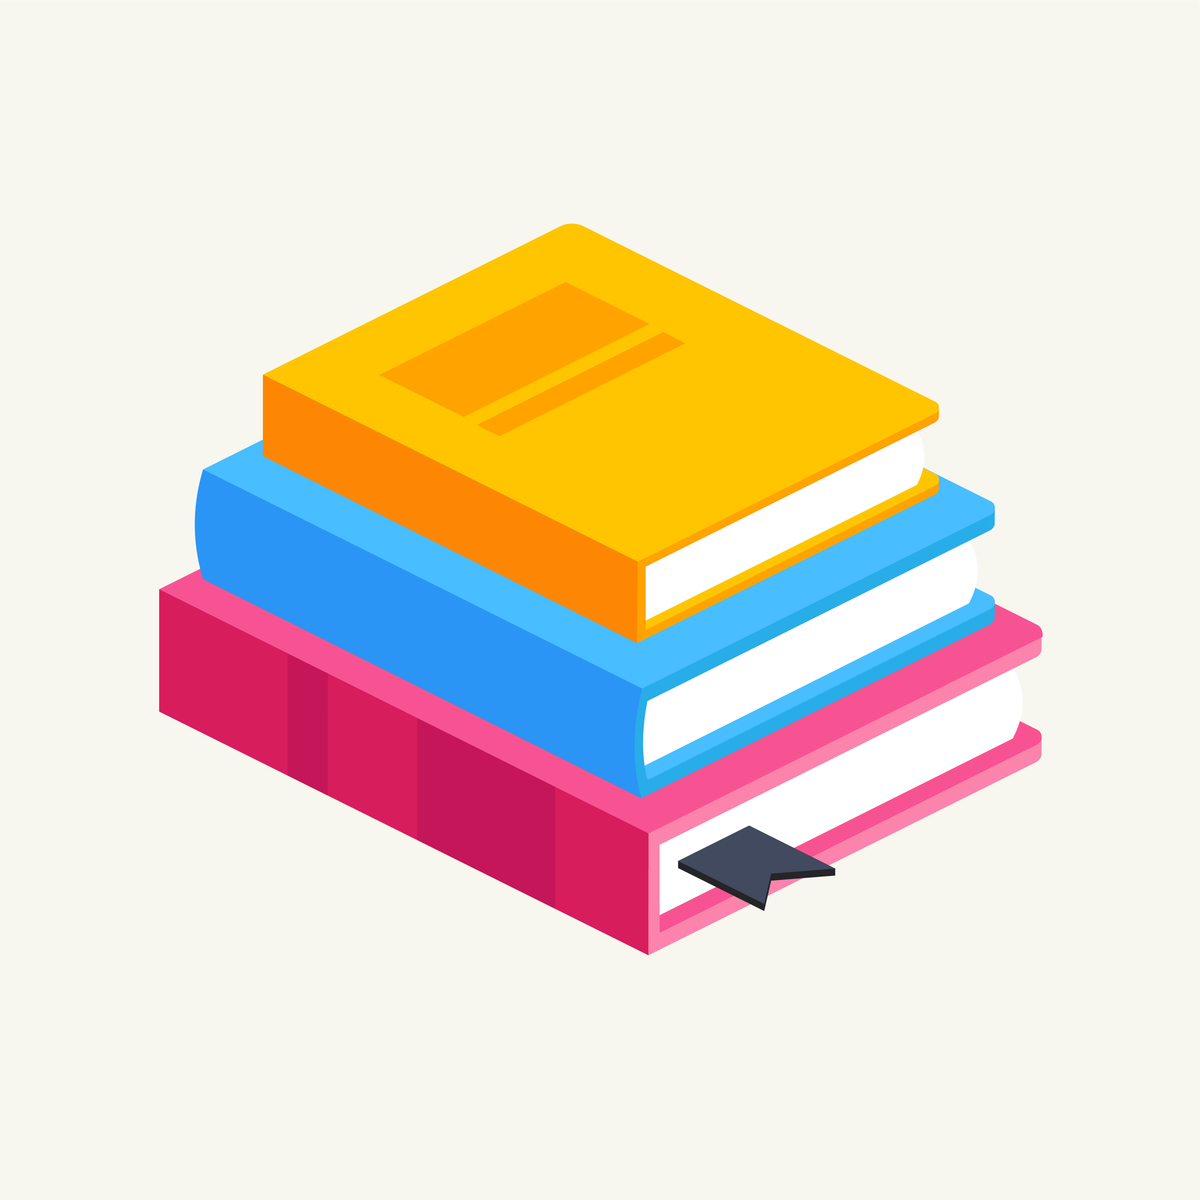 Illustration of a stack of books.